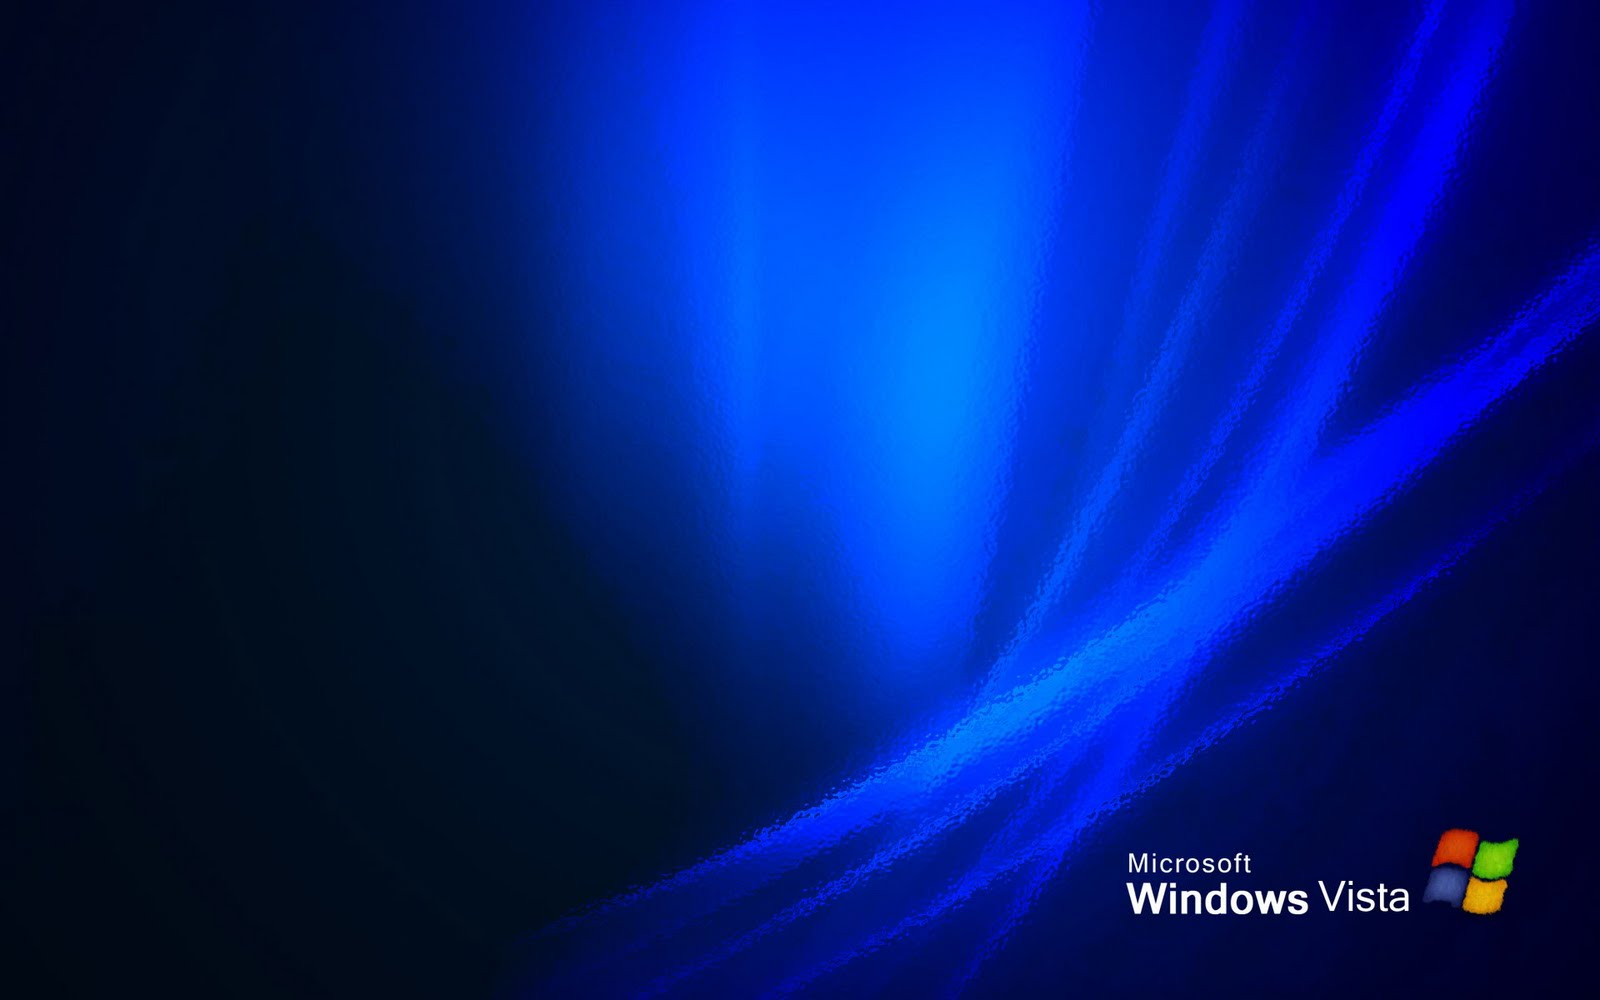 free wallpapers: windows vista wallpapers